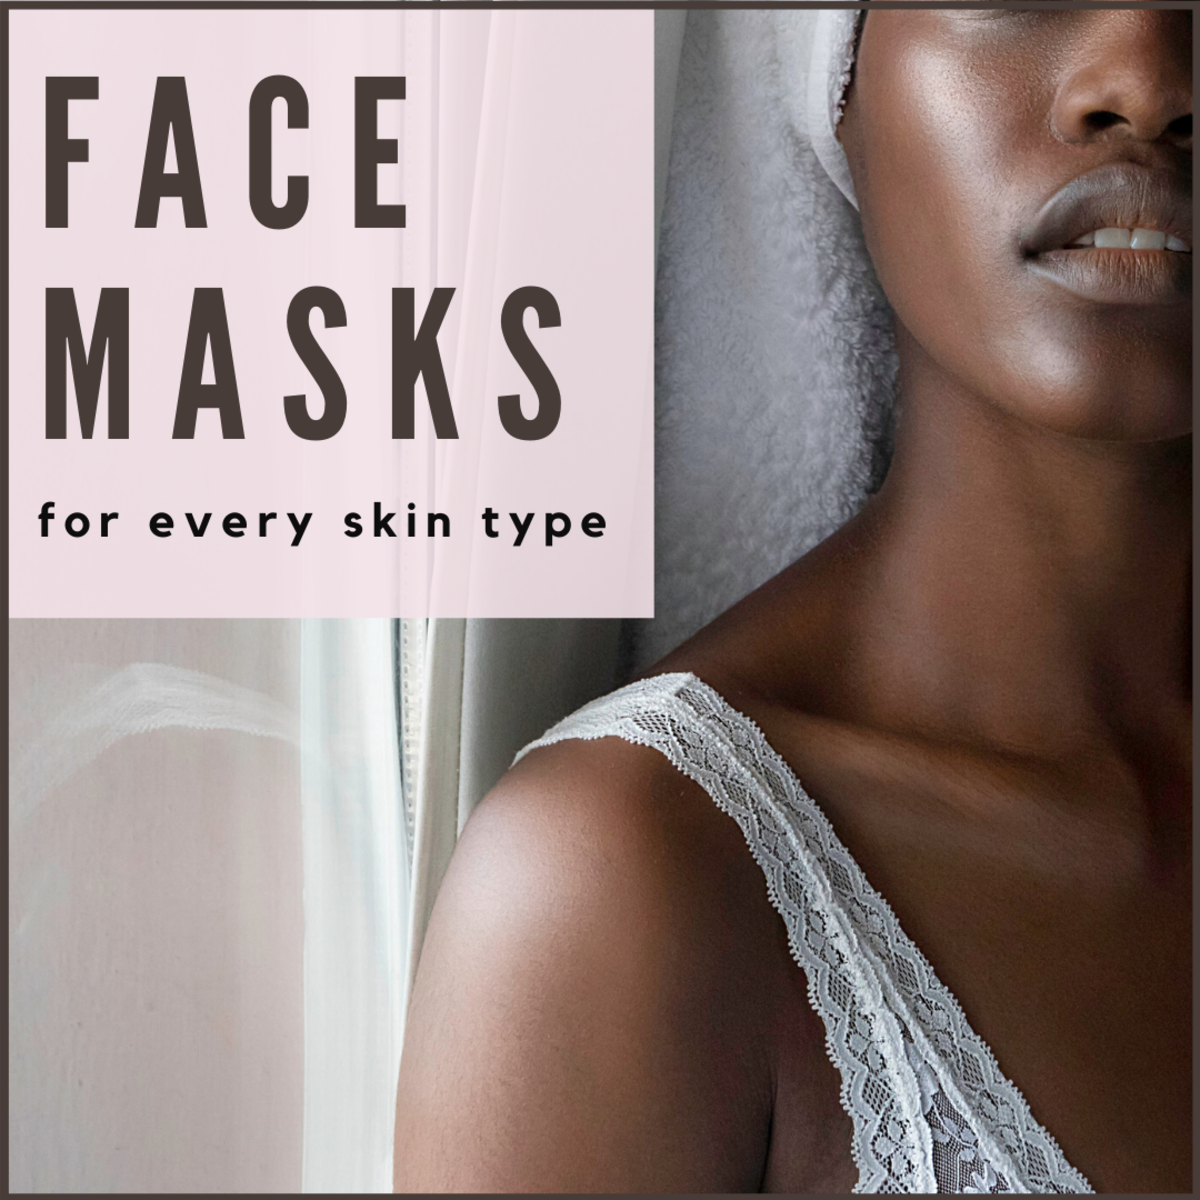 Glowing skin doesn't always mean expensive products or trips to the salon. Here are five easy and inexpensive DIY face masks for any and all skin types.